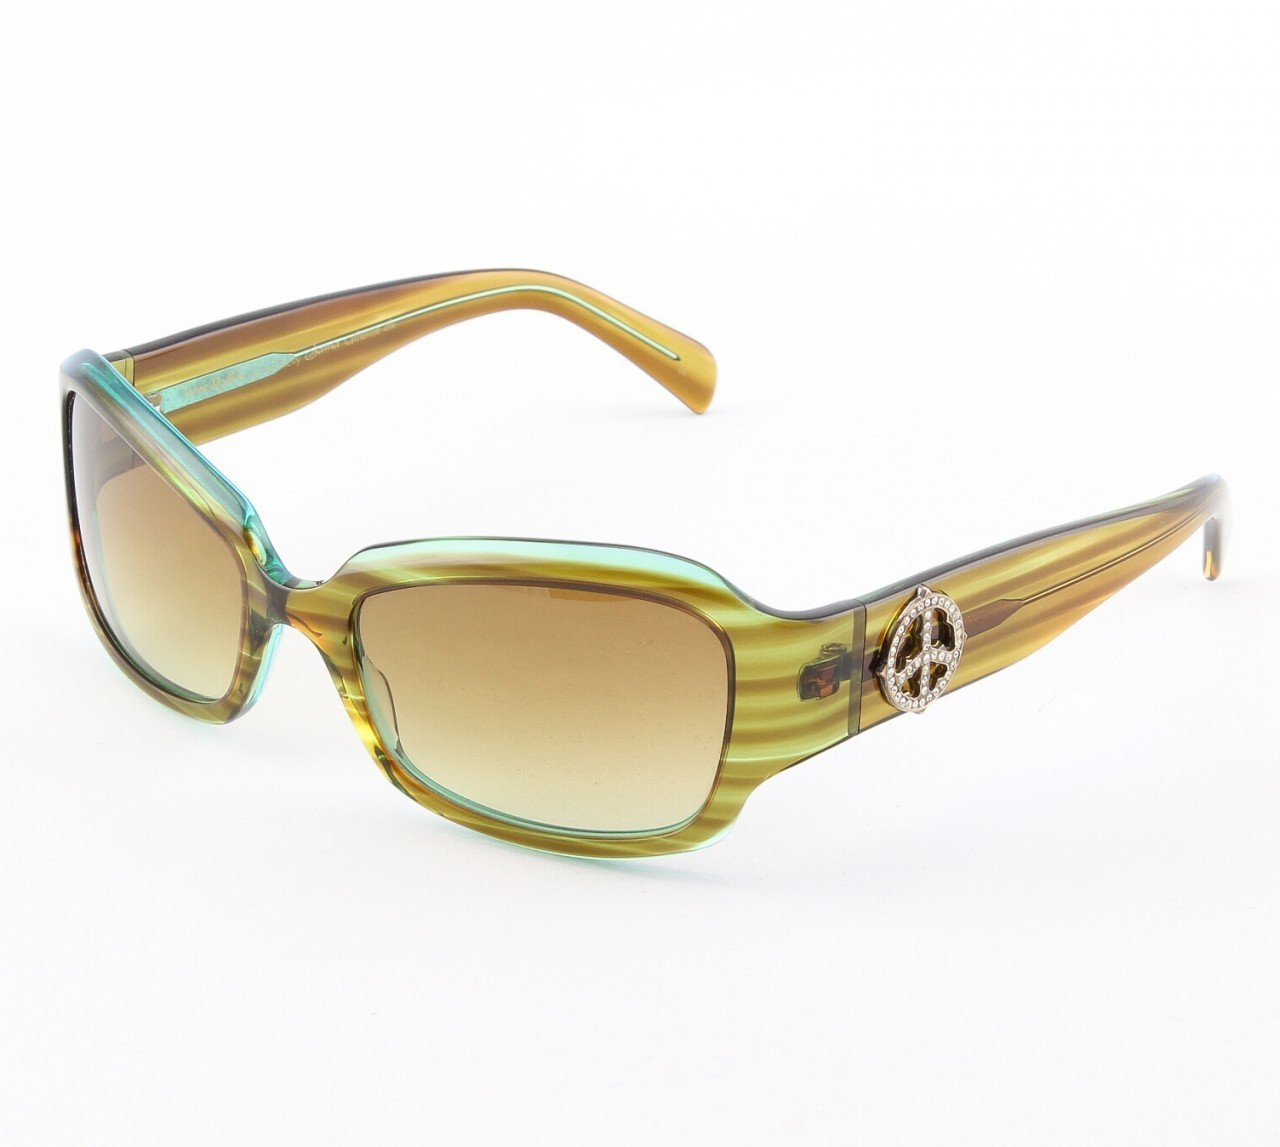 Loree Rodkin Catherine Sunglasses Olive w/ Brown Lenses, Sterling Silver, Swarovski Crystals